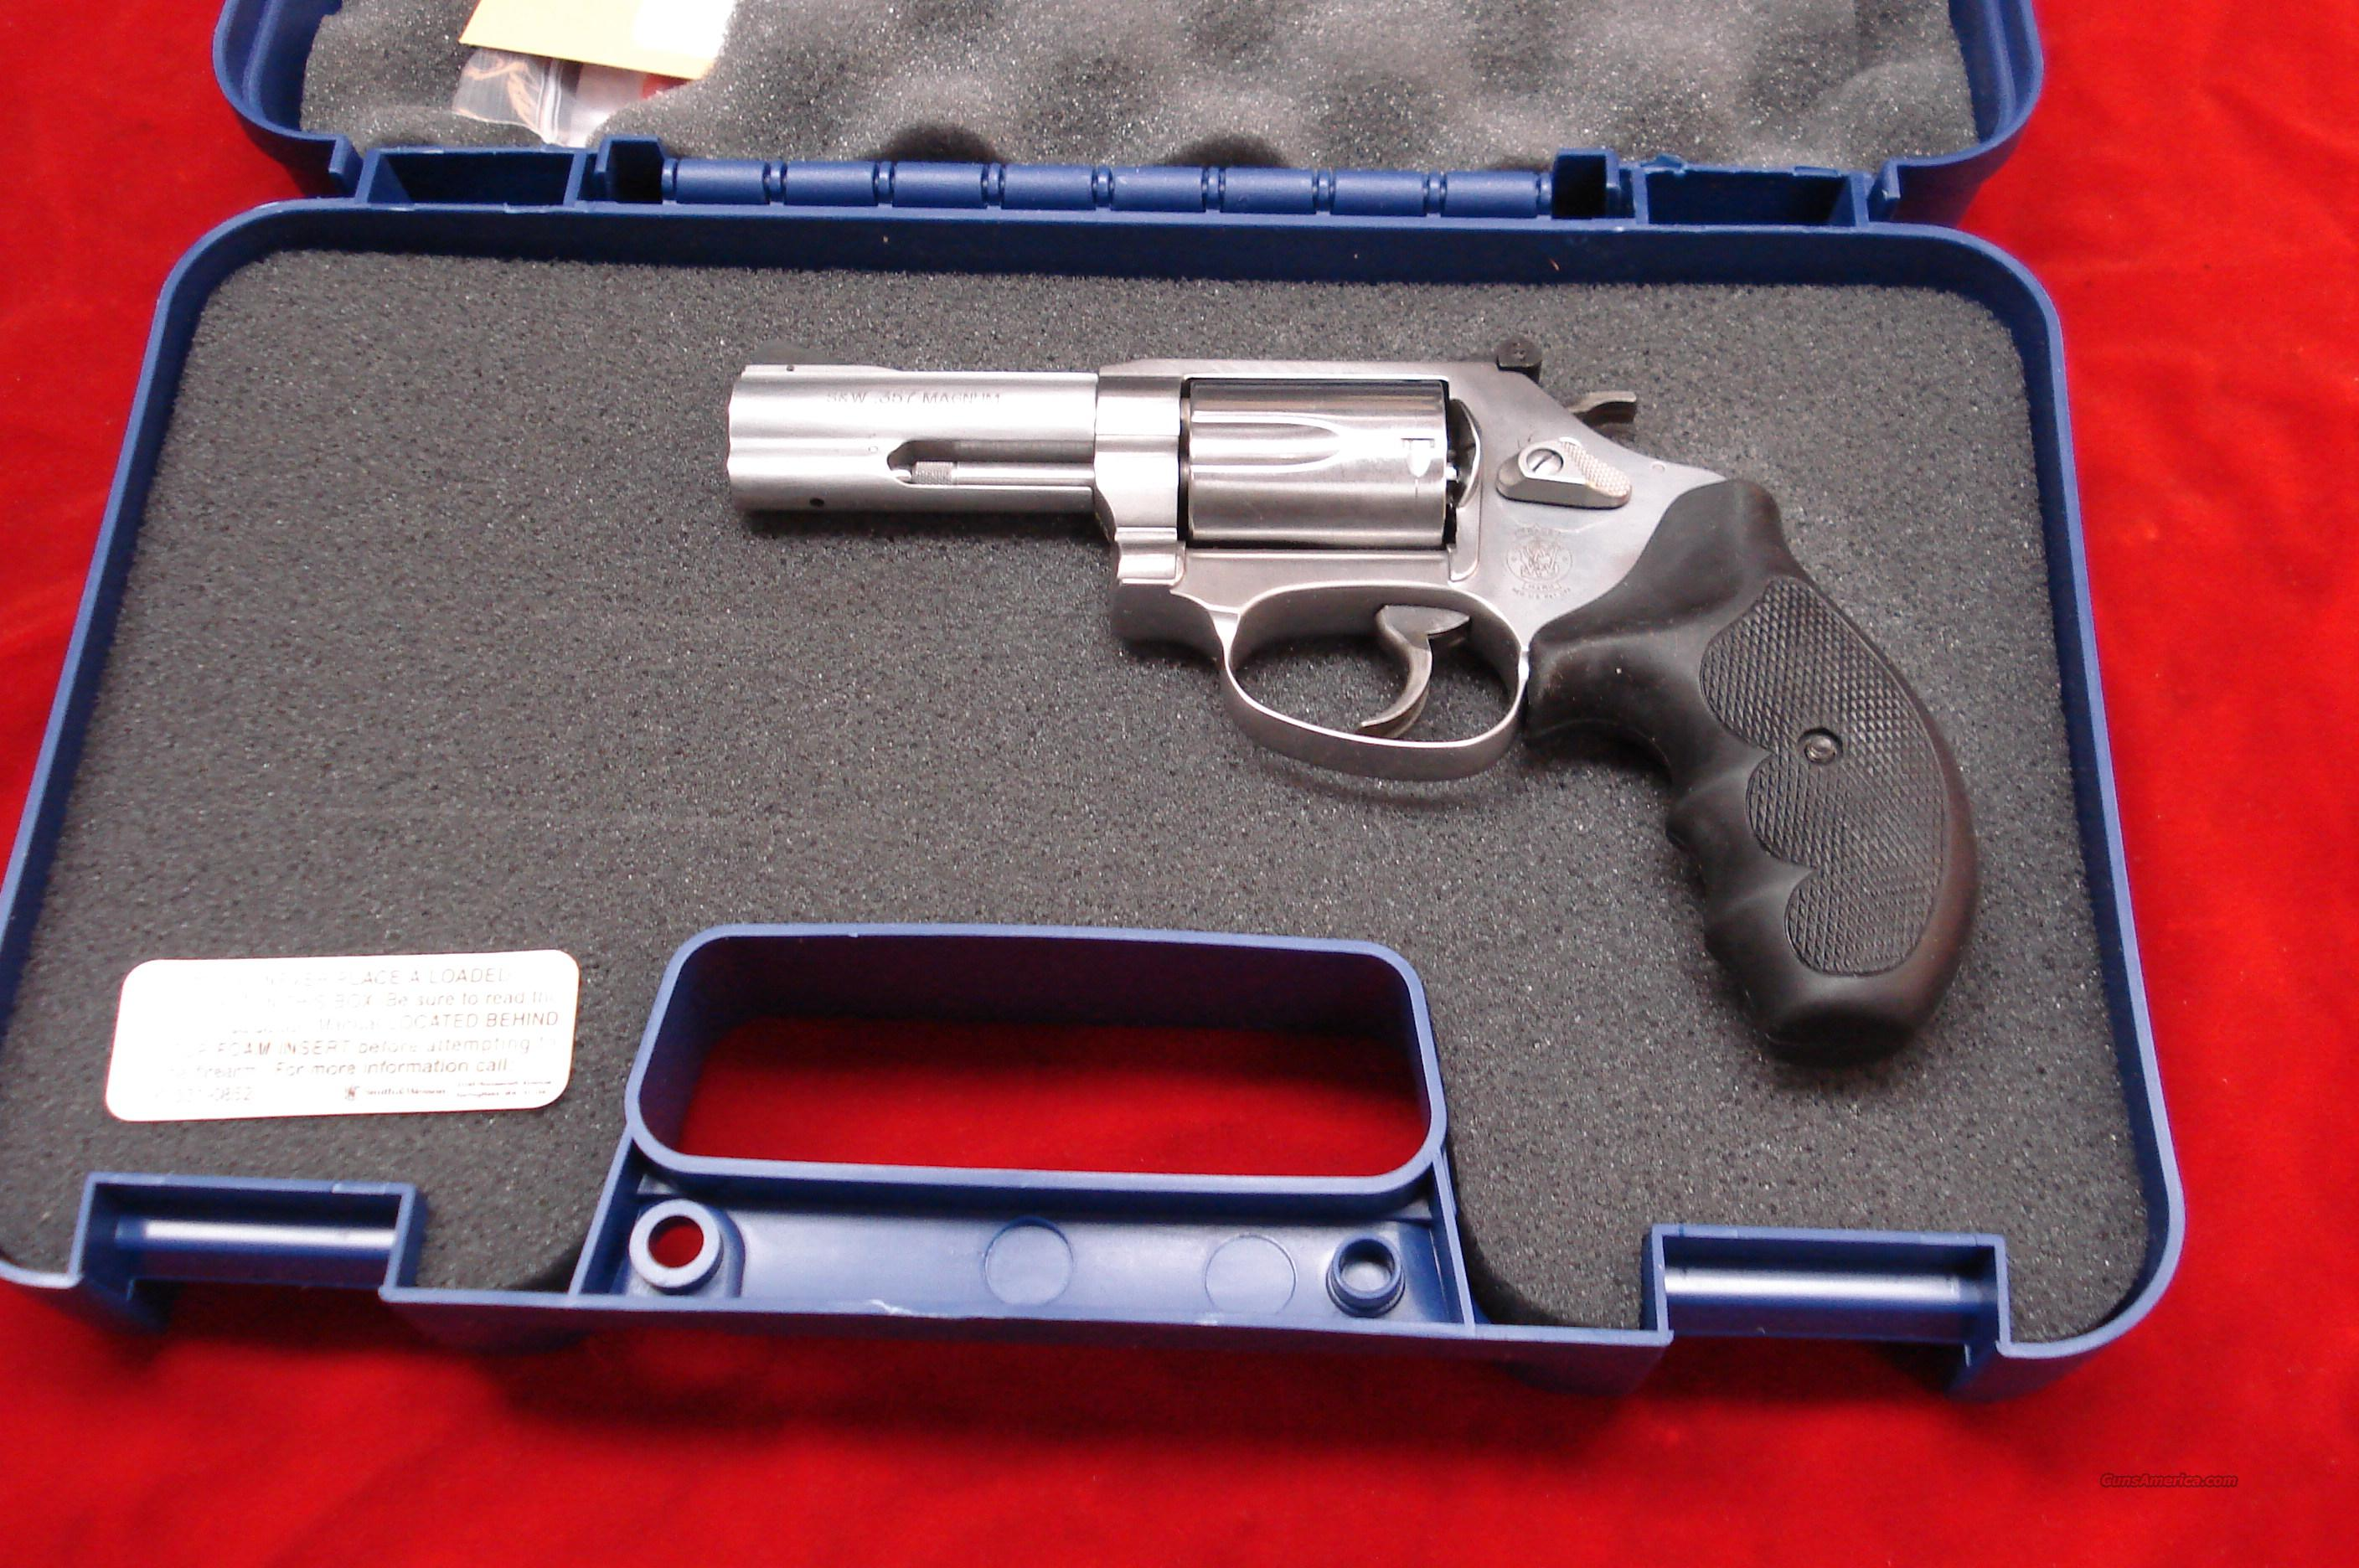 SMITH AND WESSON MODEL MODEL 60  357MAG STAINLESS NEW  Guns > Pistols > Smith & Wesson Revolvers > Pocket Pistols